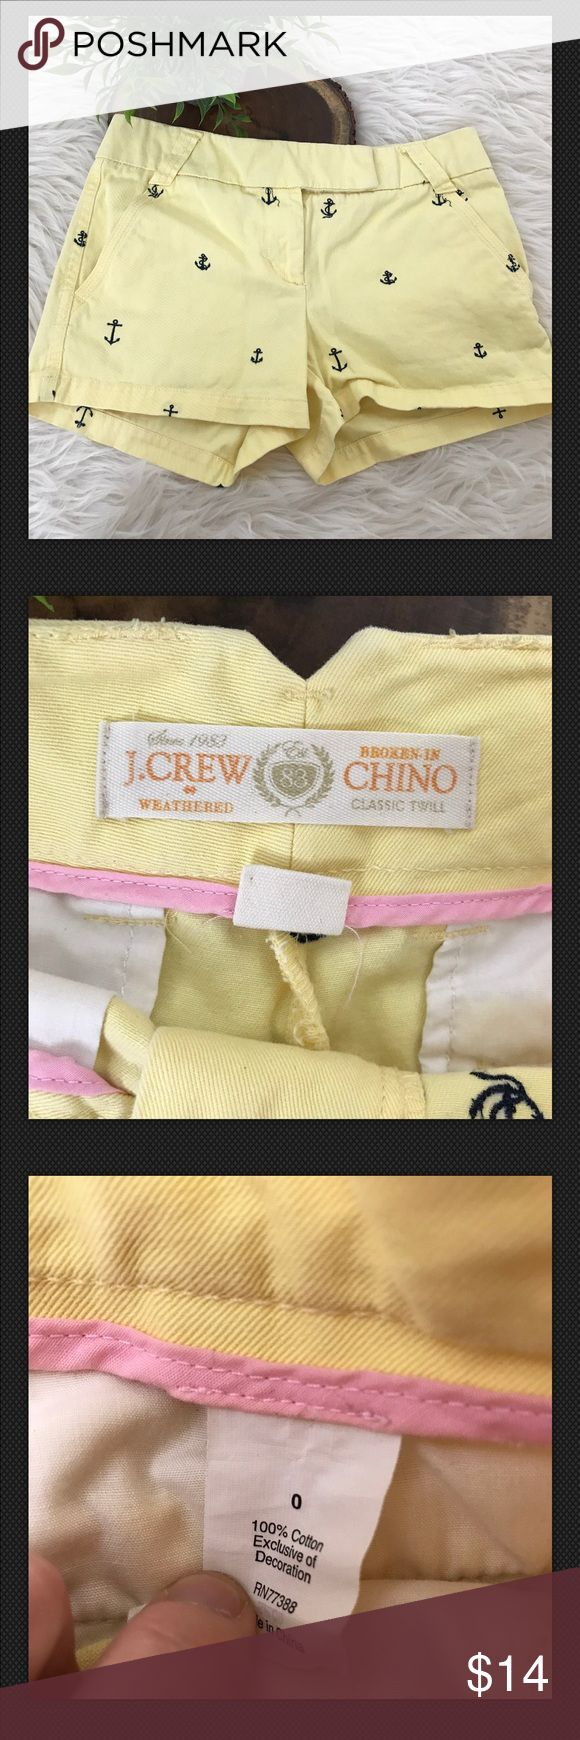 J.Crew Yellow City Fit Anchor Shorts Size 0 J.Crew Womens Yellow City Fit Broken In Chino Shorts Embroidered Anchors Size 0. Great gently worn condition, smoke free home!WC22  Measurements (in inches) are as follows: Waist, laid flat, side to side: 15 Inseam: 3 Rise: 8.5 J. Crew Shorts